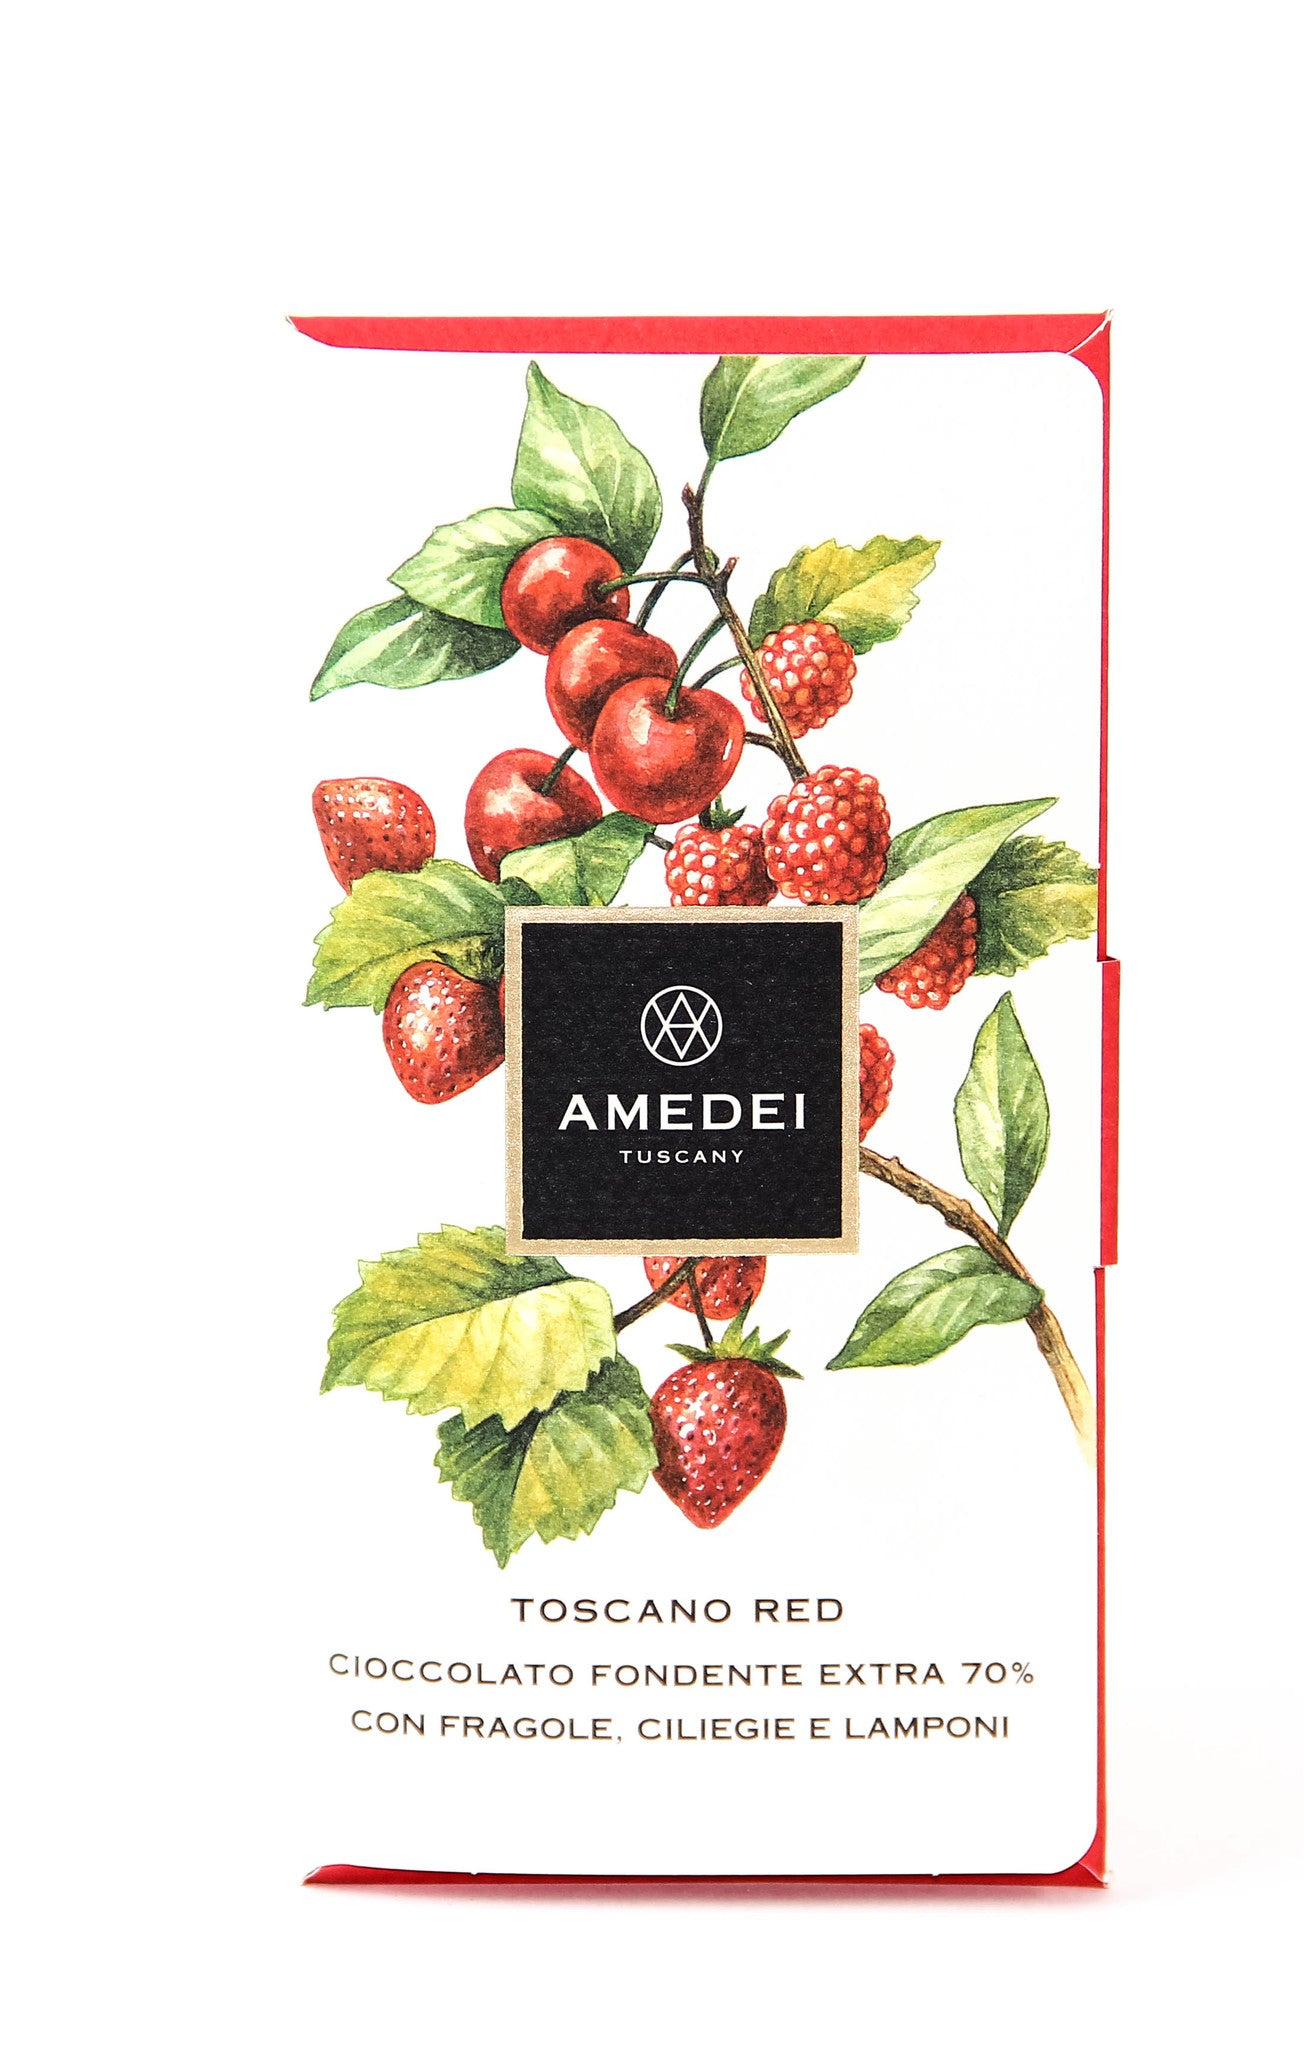 Amedei Toscano Red 70% Dark Chocolate with Cherries, Strawberries and Raspberries-Chocolate-The Meadow